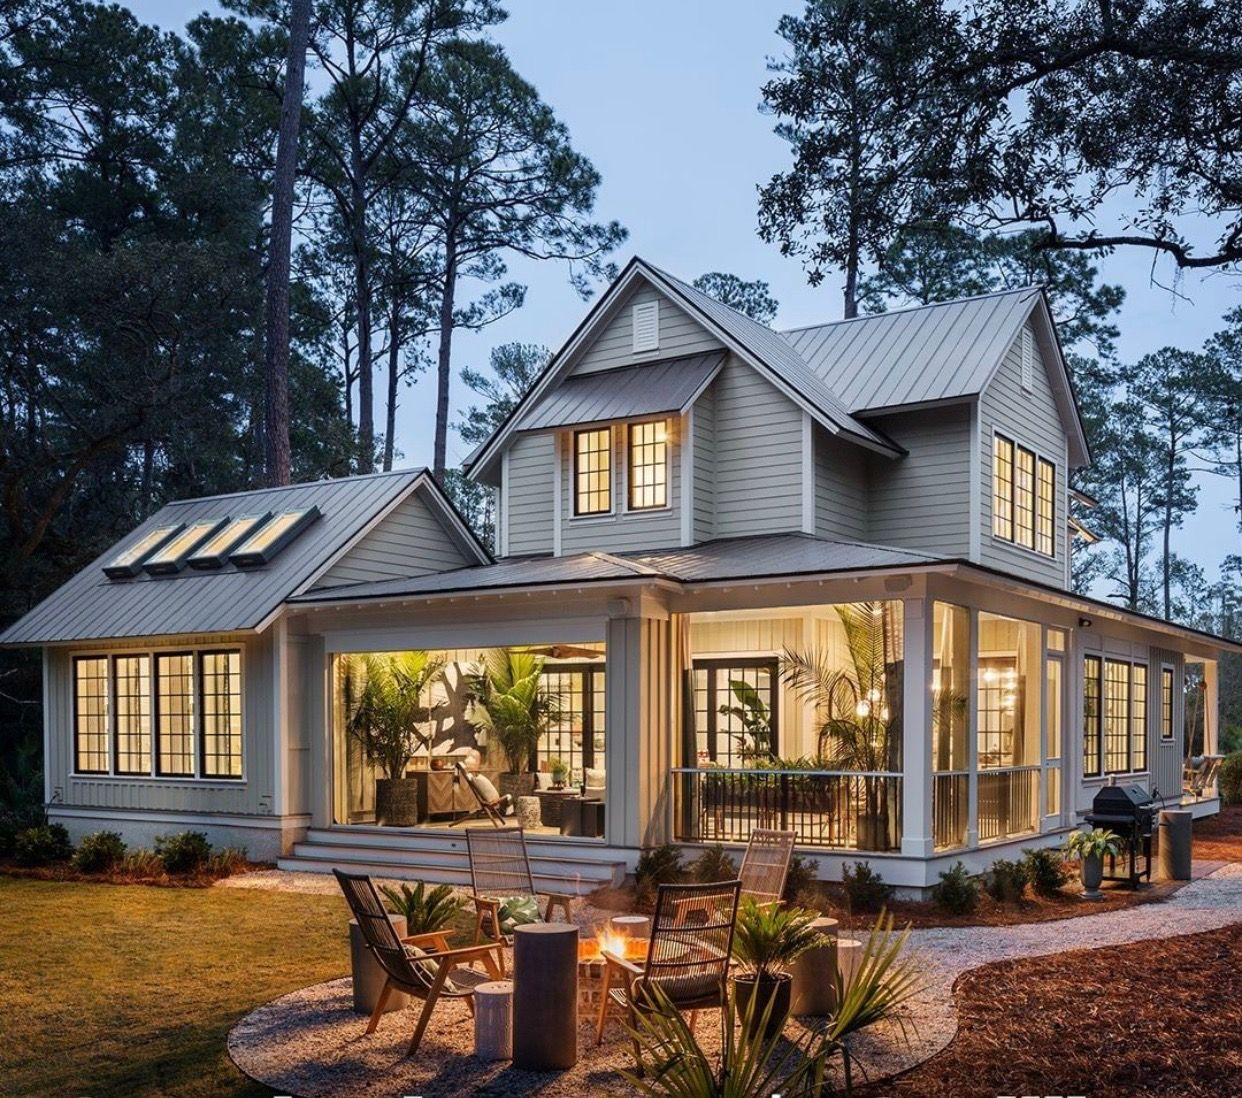 20849e153bc9605469cd988bb6666552 Palmetto One Story Farmhouse Plans on farm style house plans, one story duplex plans, one story log cabin plans, one story ranch plans, one story white farmhouse, one story colonial plans, old-fashioned farm house plans, one story condo plans, one story barn plans, one story mansion plans, one story country farmhouse, one story modern farmhouse, one story farmhouse elevation, one story roundhouse plans, one story country farm homes, one story townhouse plans,